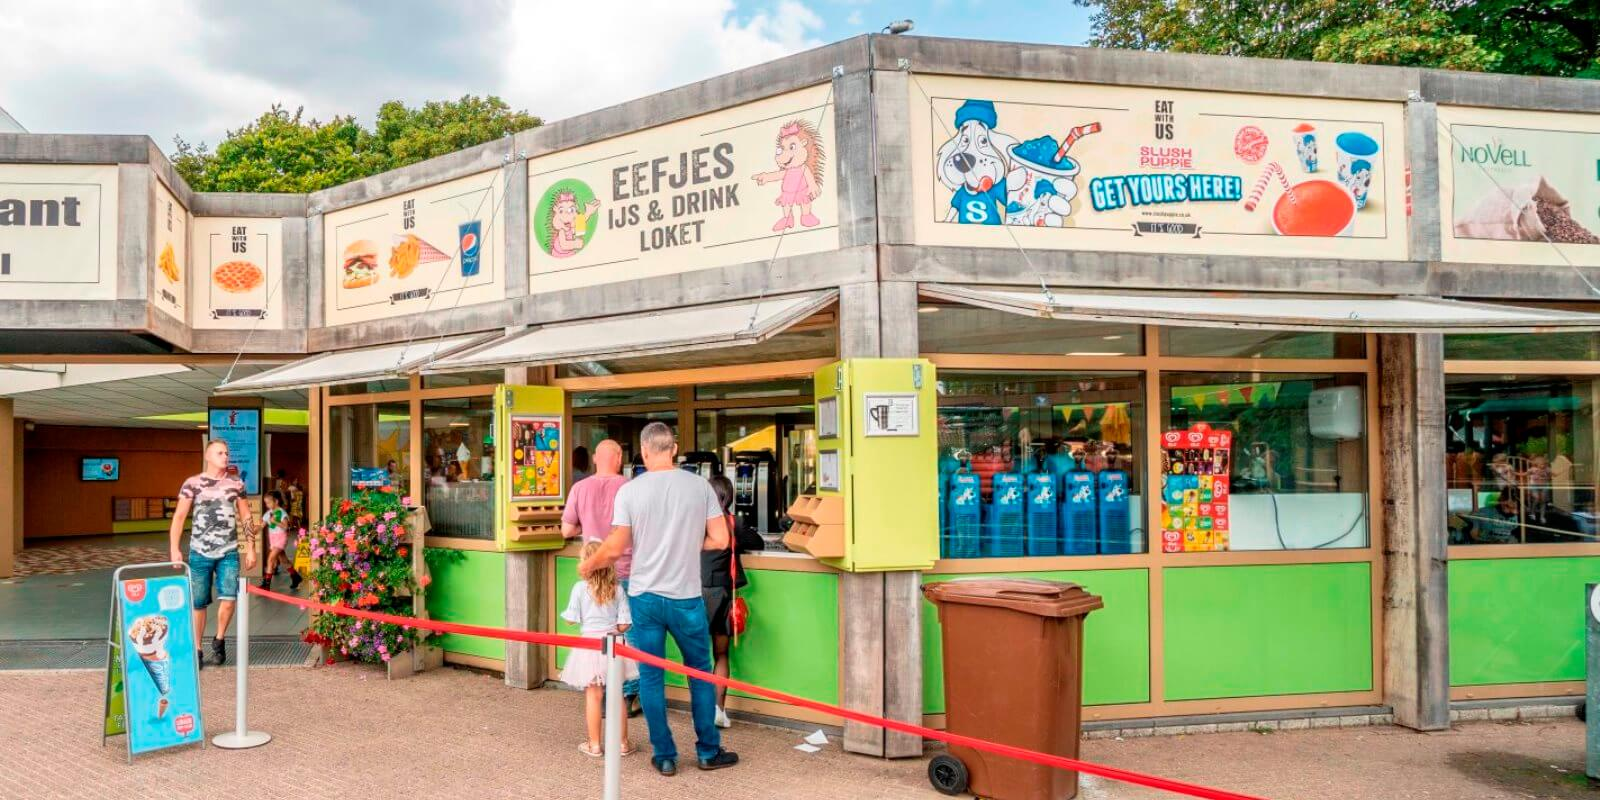 Eefje's ice cream and drinks counter